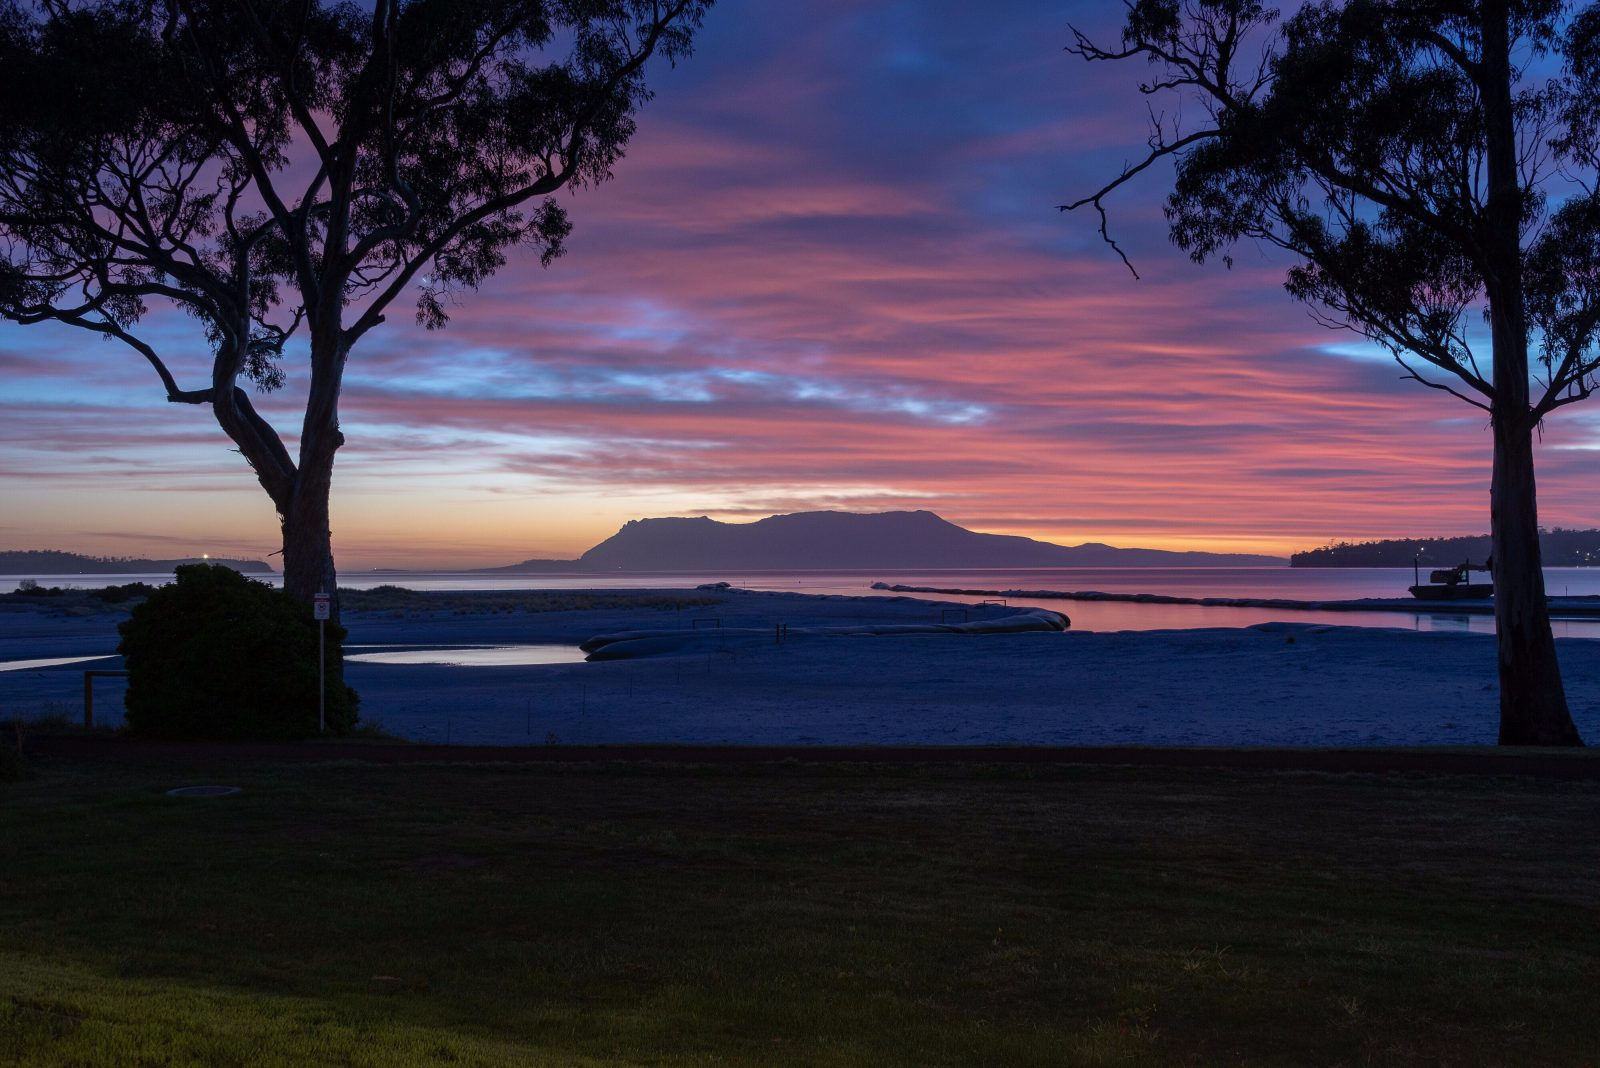 Lyenna: Sunrise over Maria Island viewed from the house